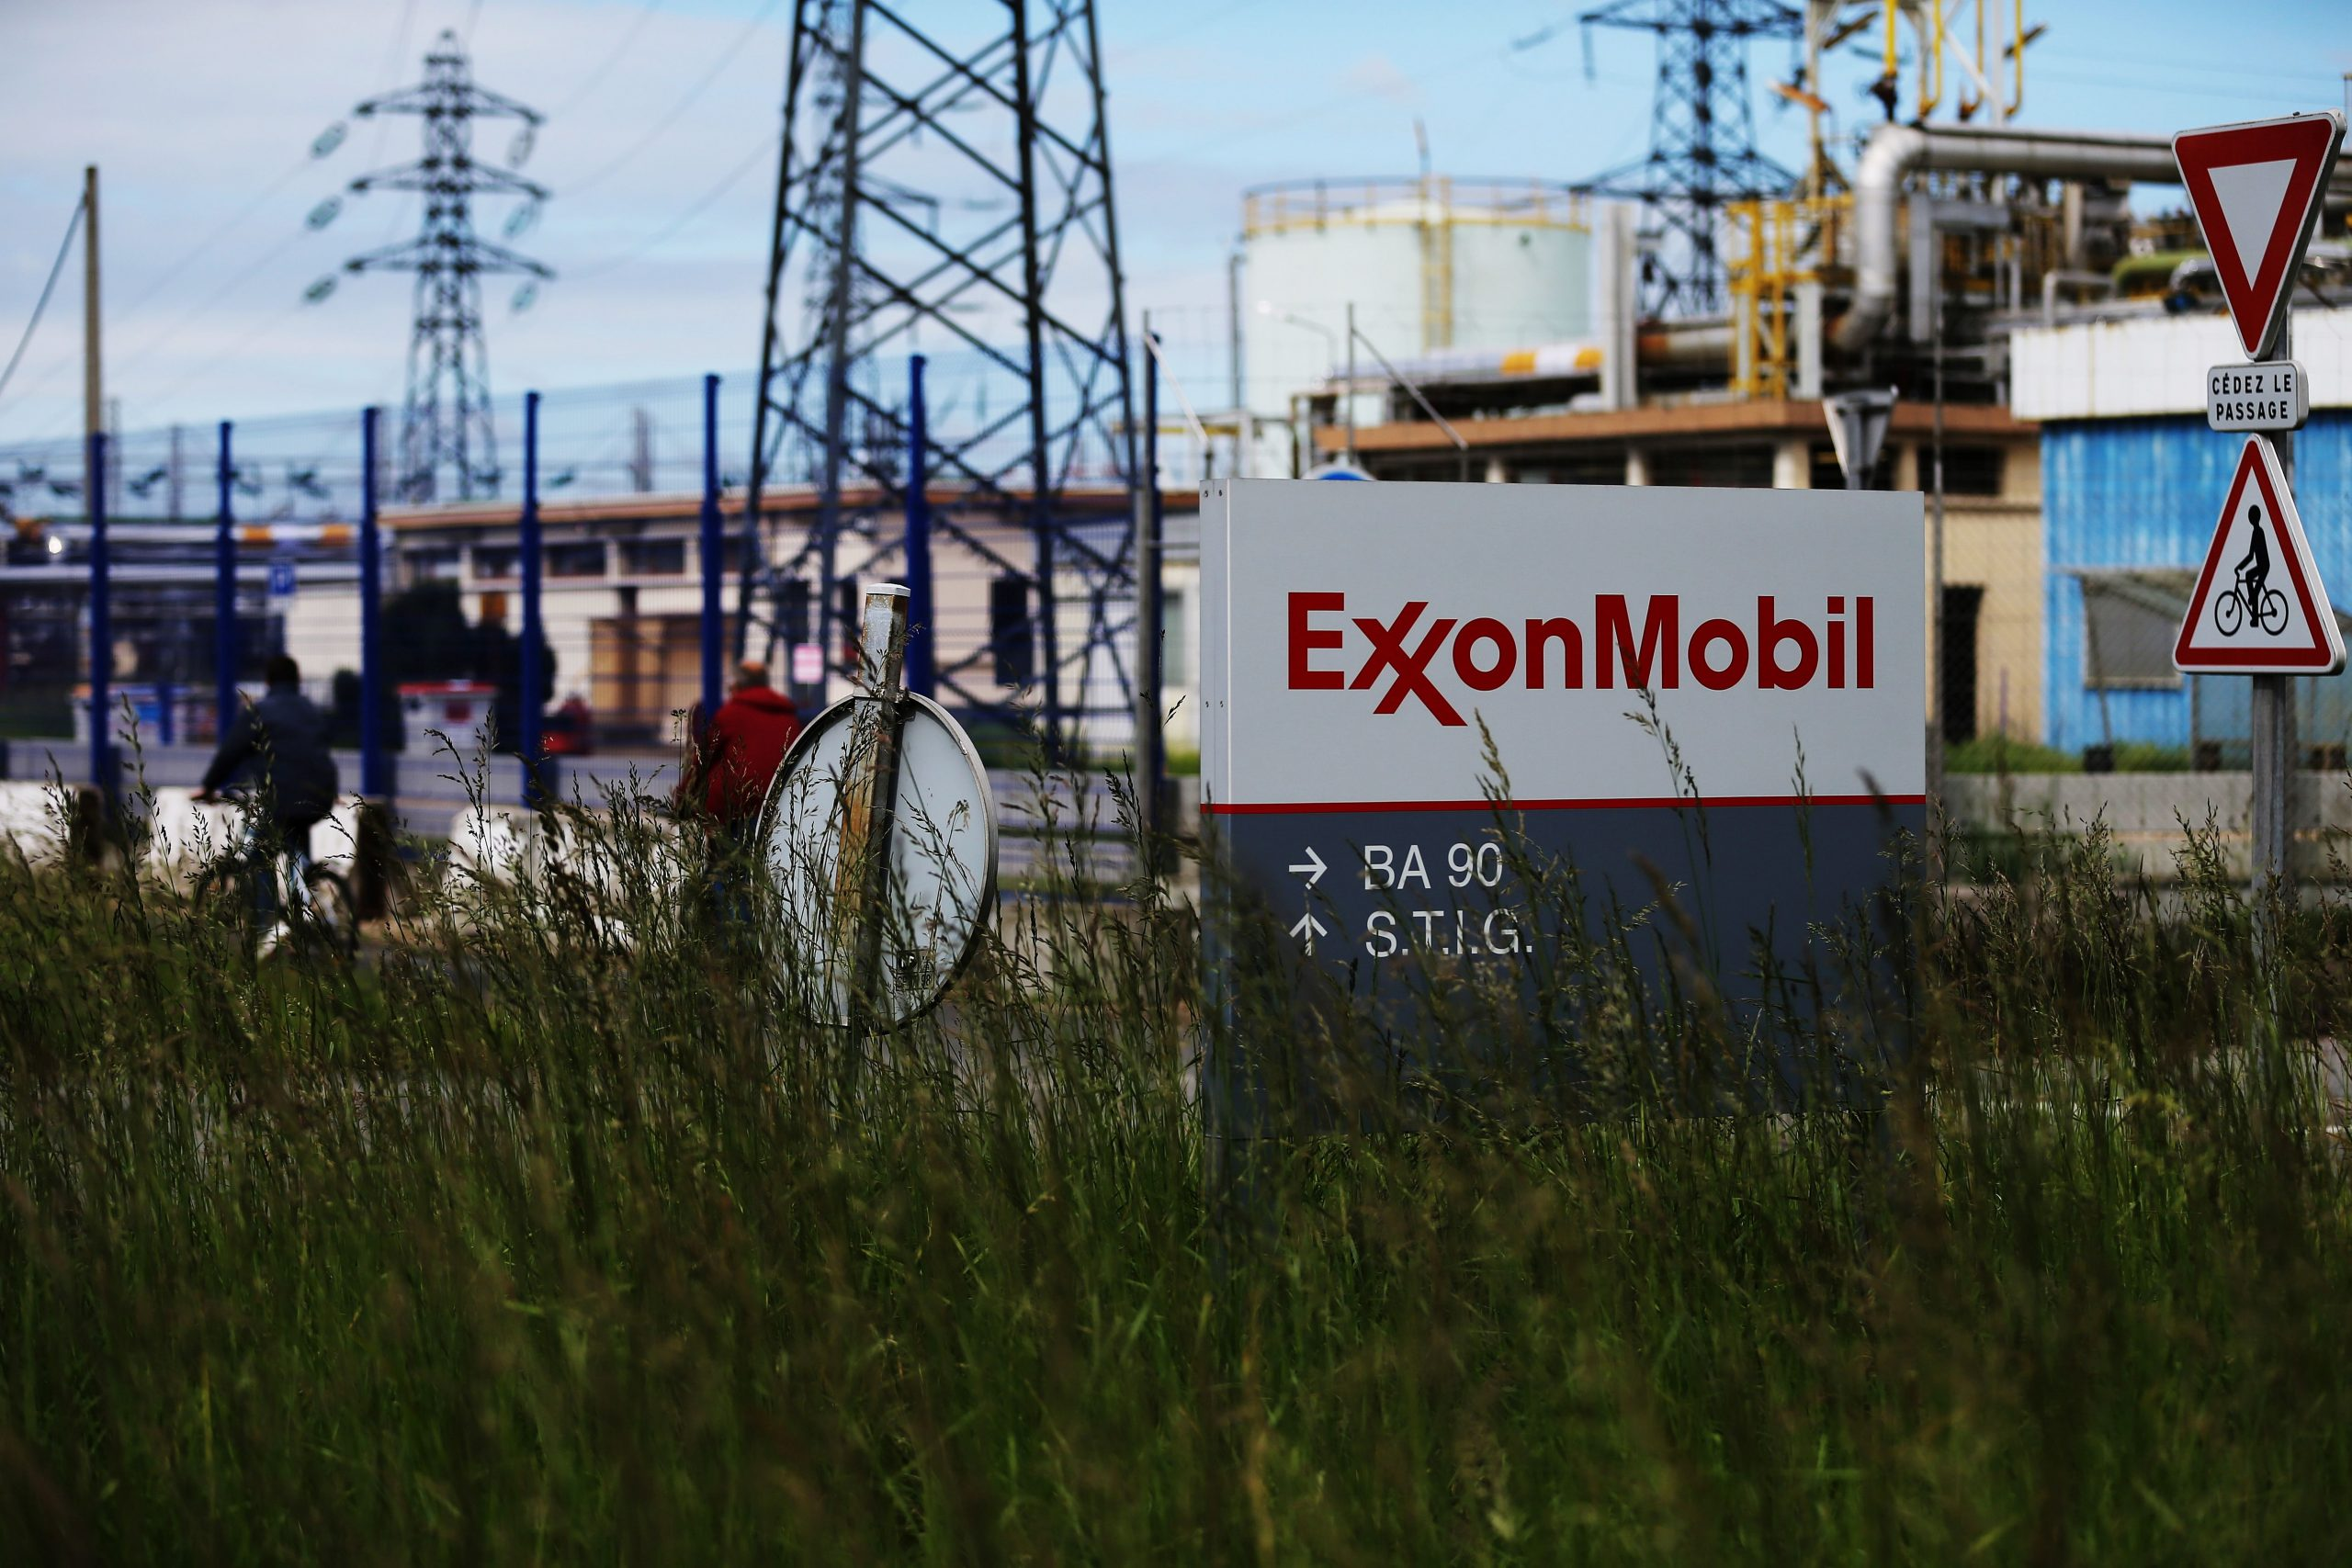 Exxon, under Rex Tillerson's leadership, found itself ensnared in climate investigations